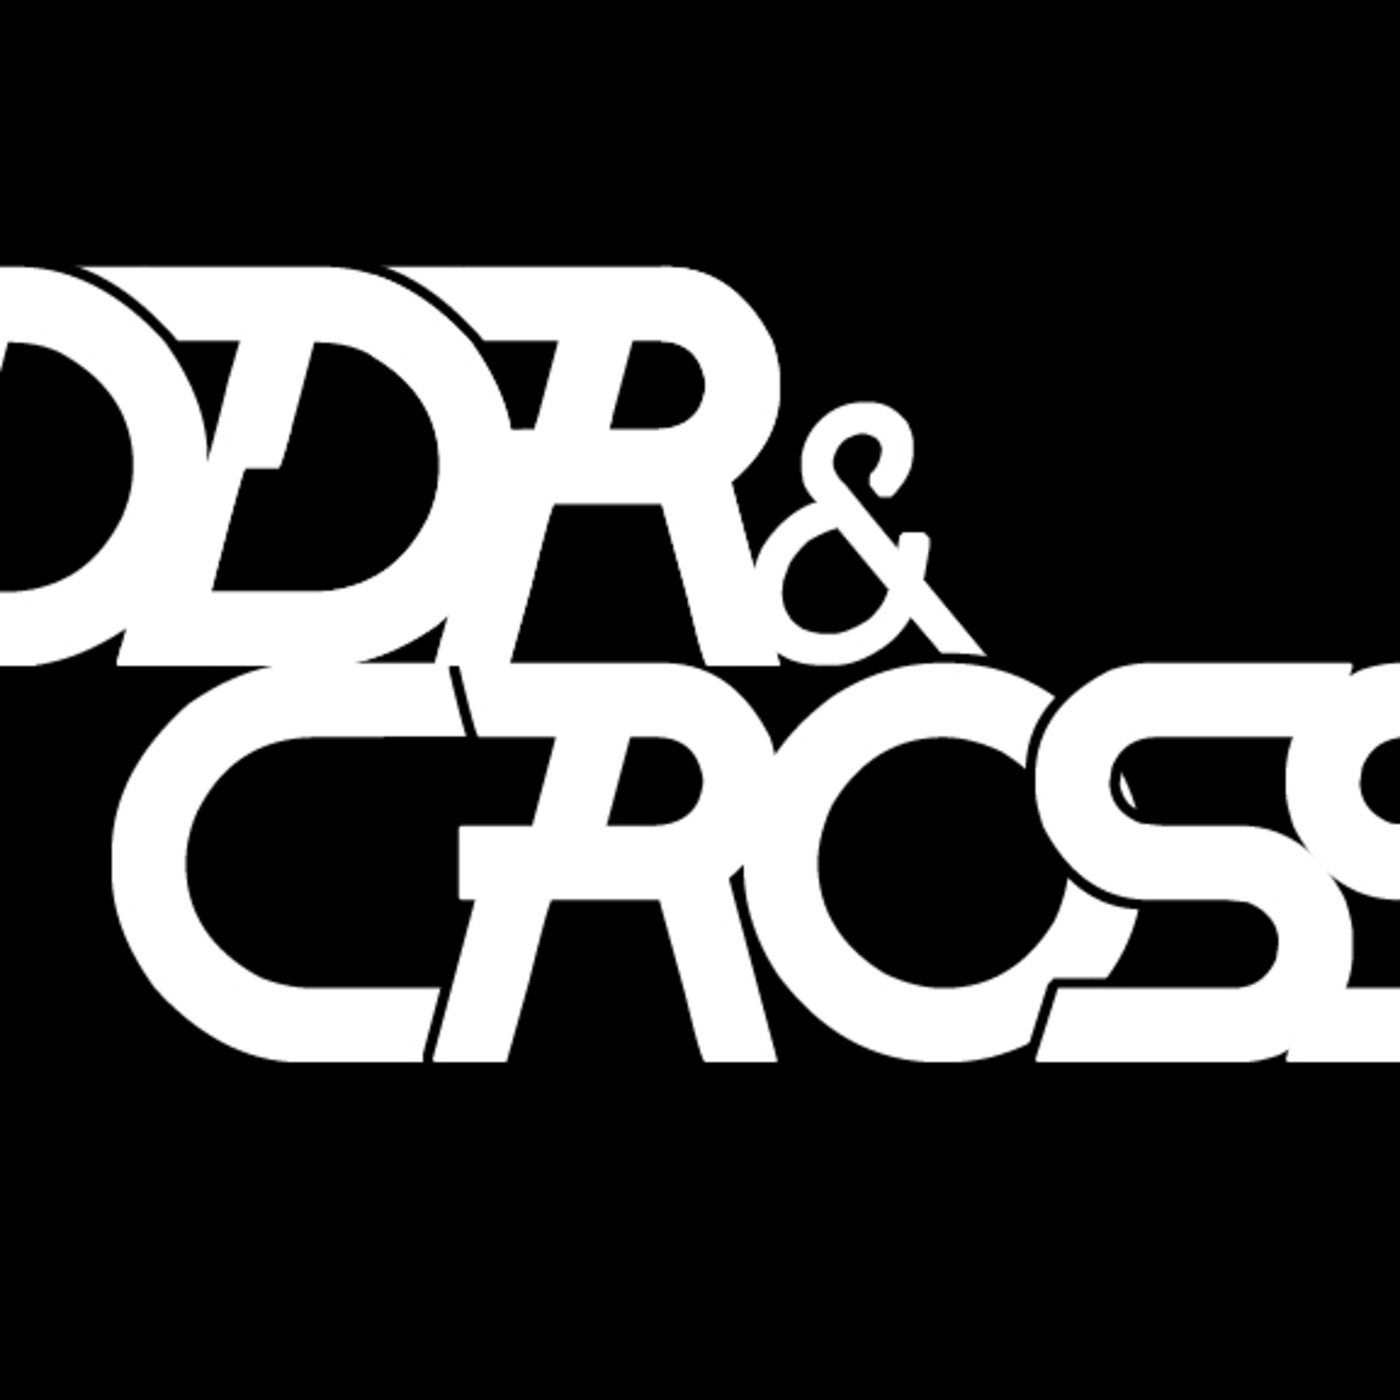 Drop dead red & Dj cross